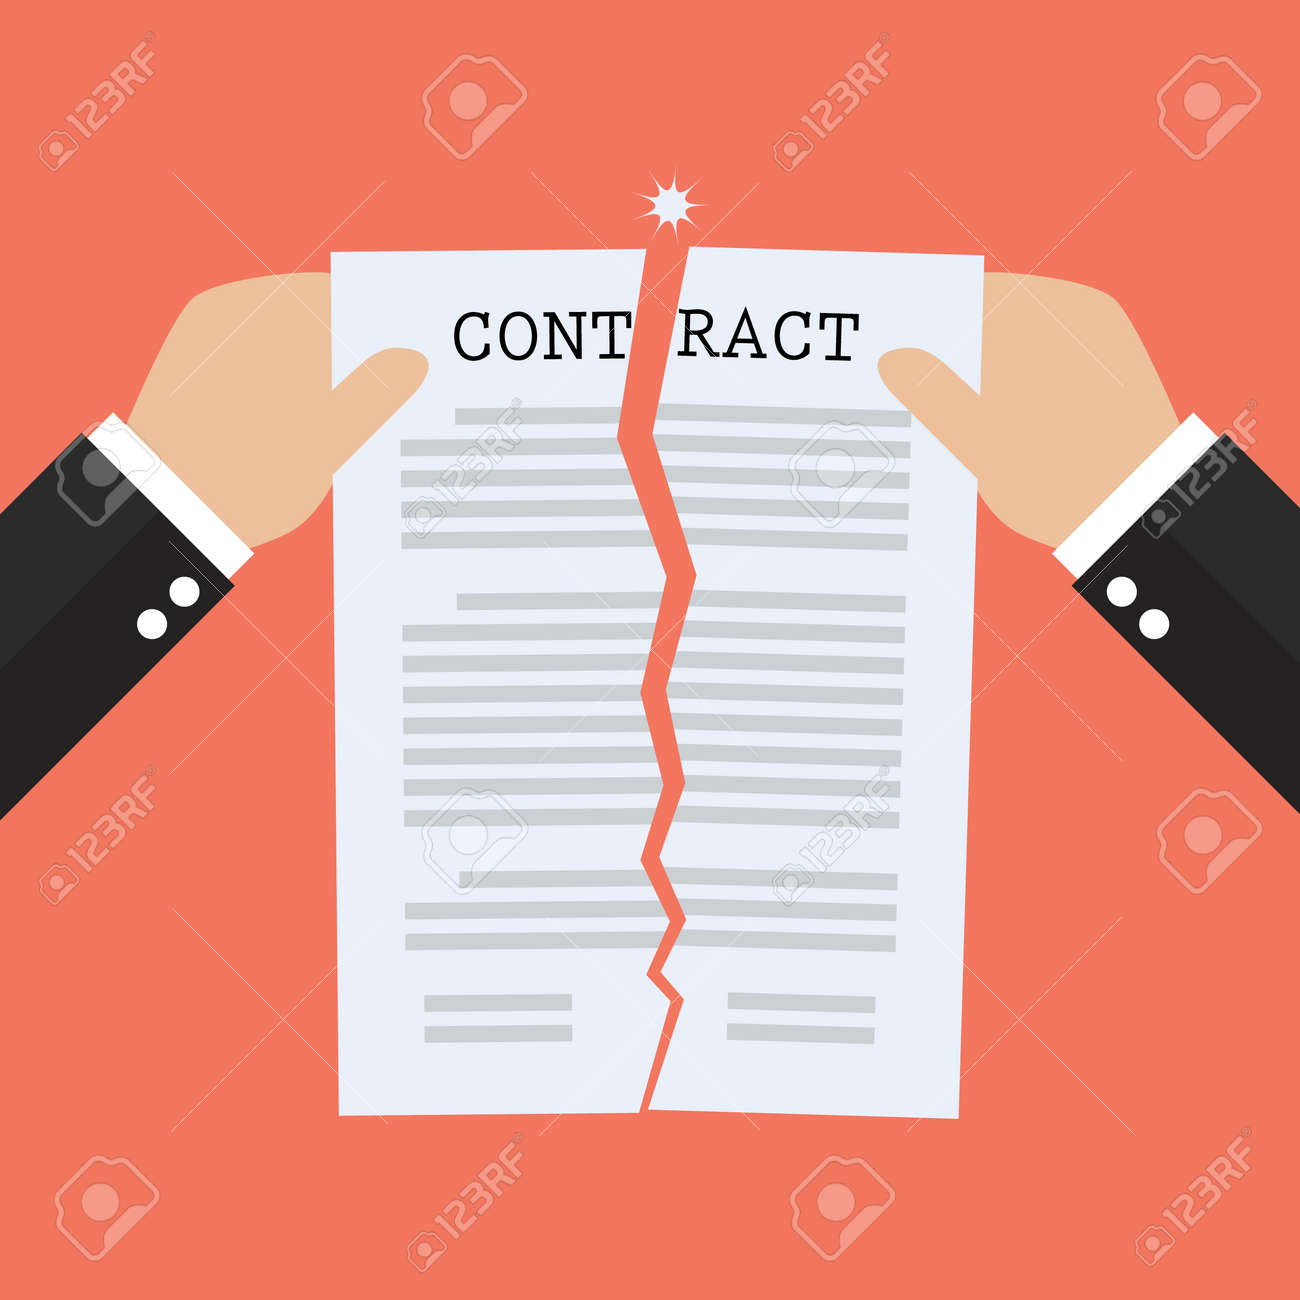 contract cancellation stock photos images royalty contract contract cancellation hands tearing apart contract document paper agreement cancellation illustration